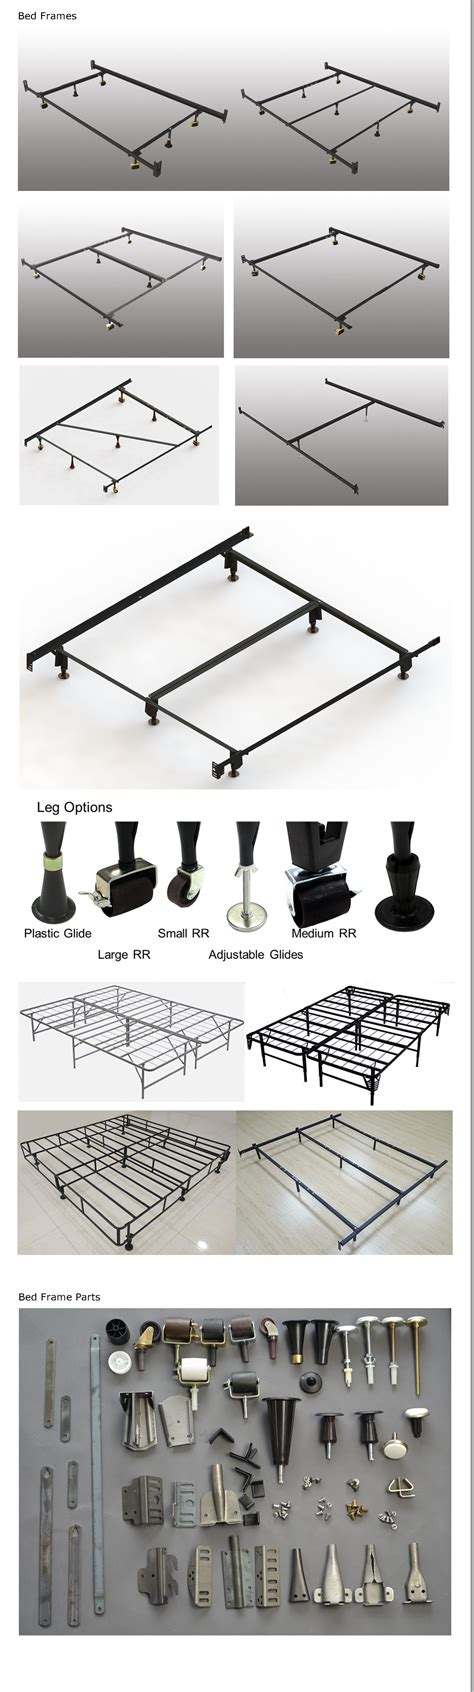 bed frame parts arw bed frame parts